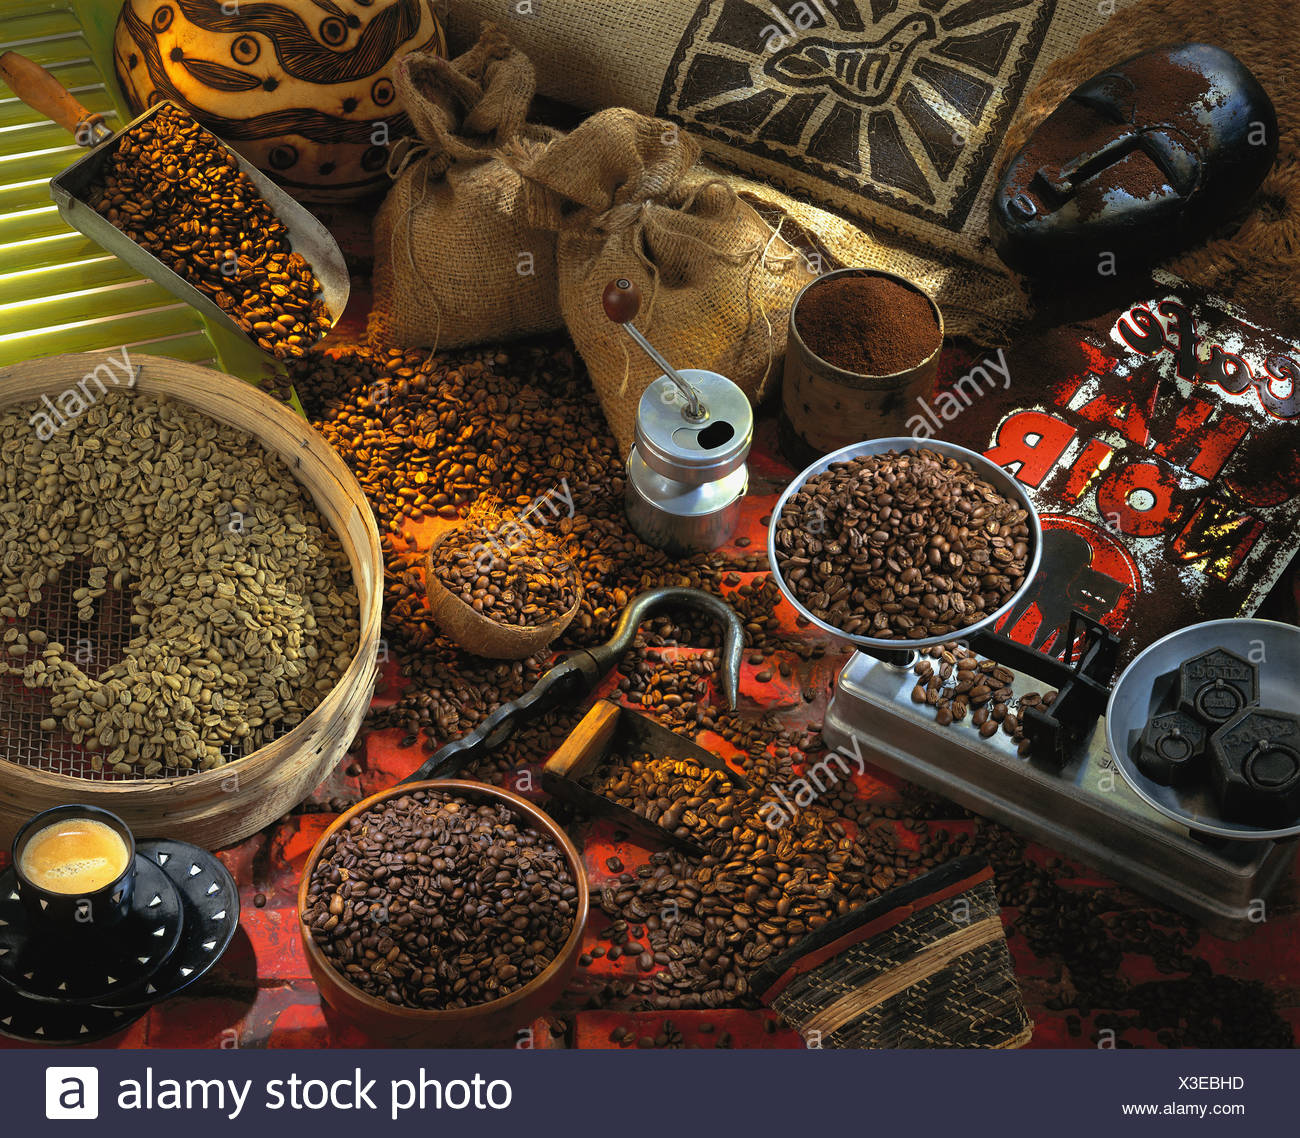 selection of coffee beans - Stock Image